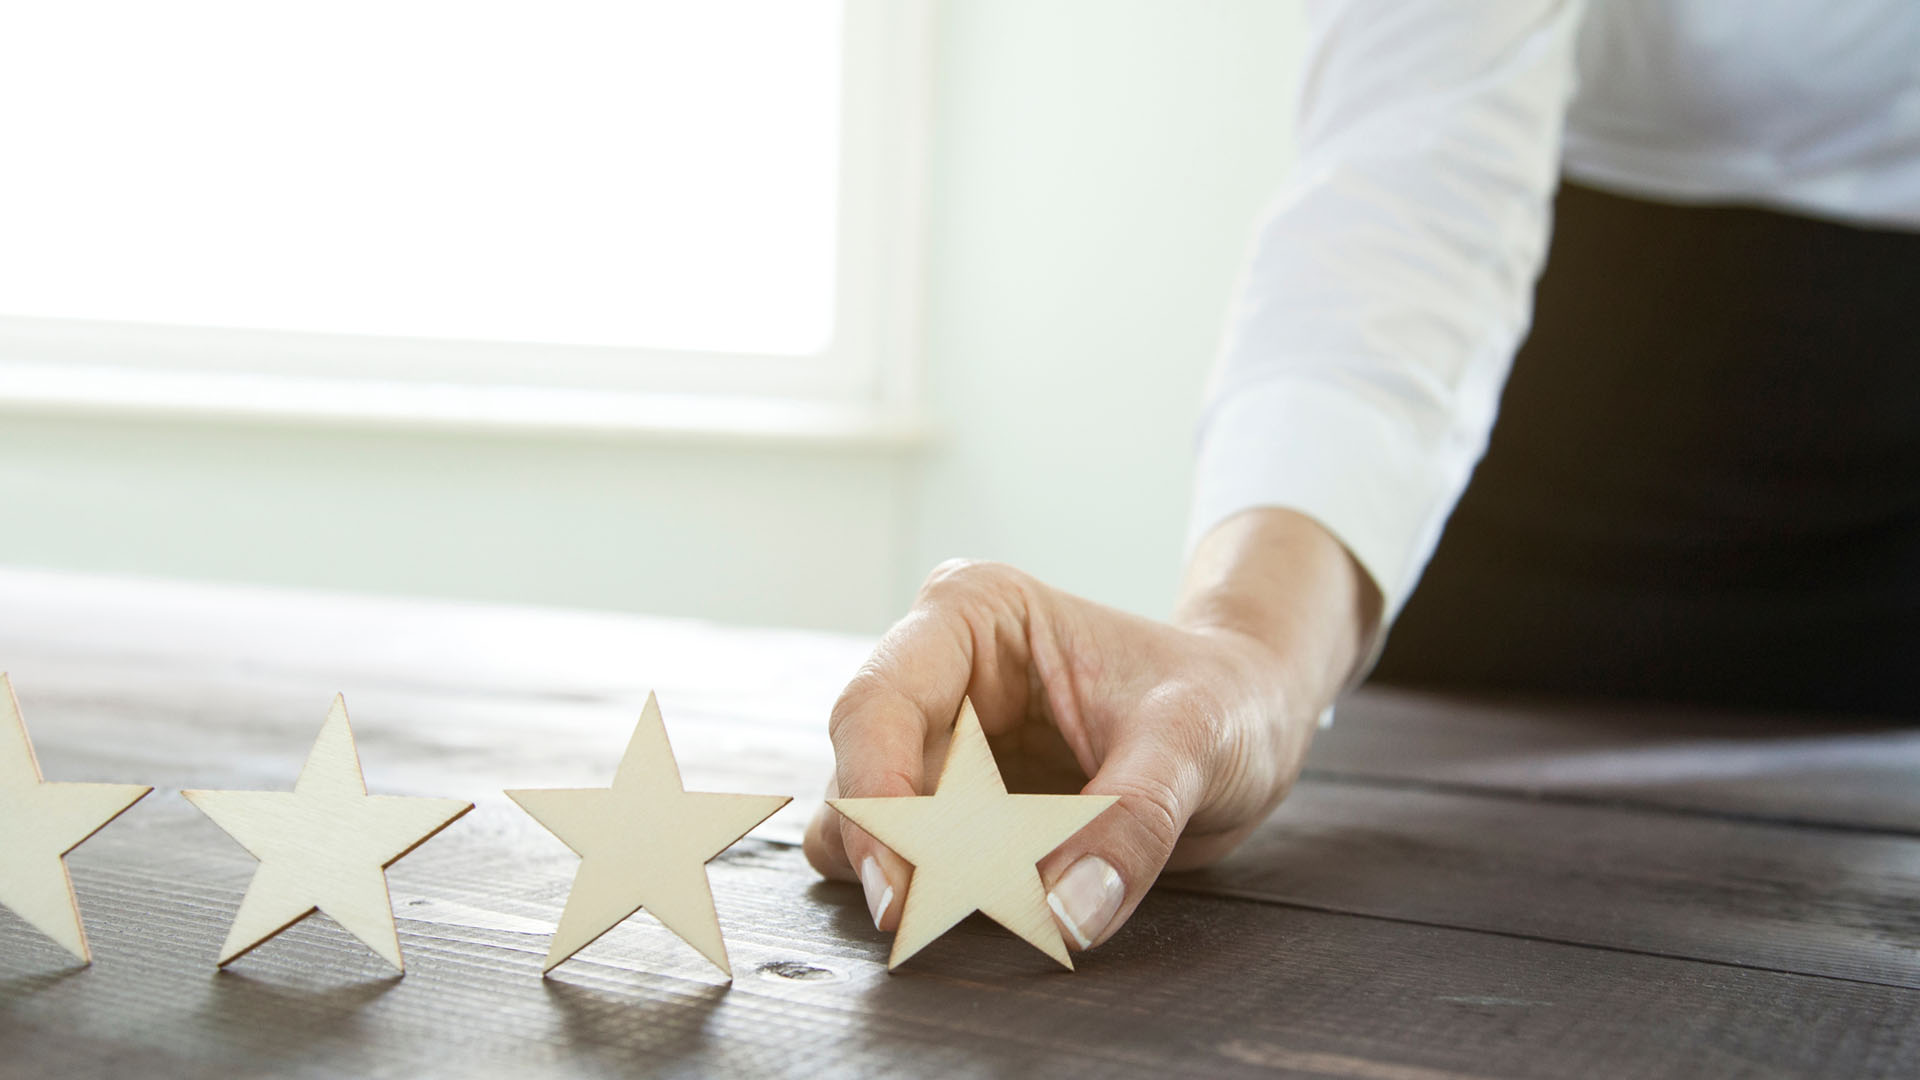 woman's hand placing wooden stars in a row